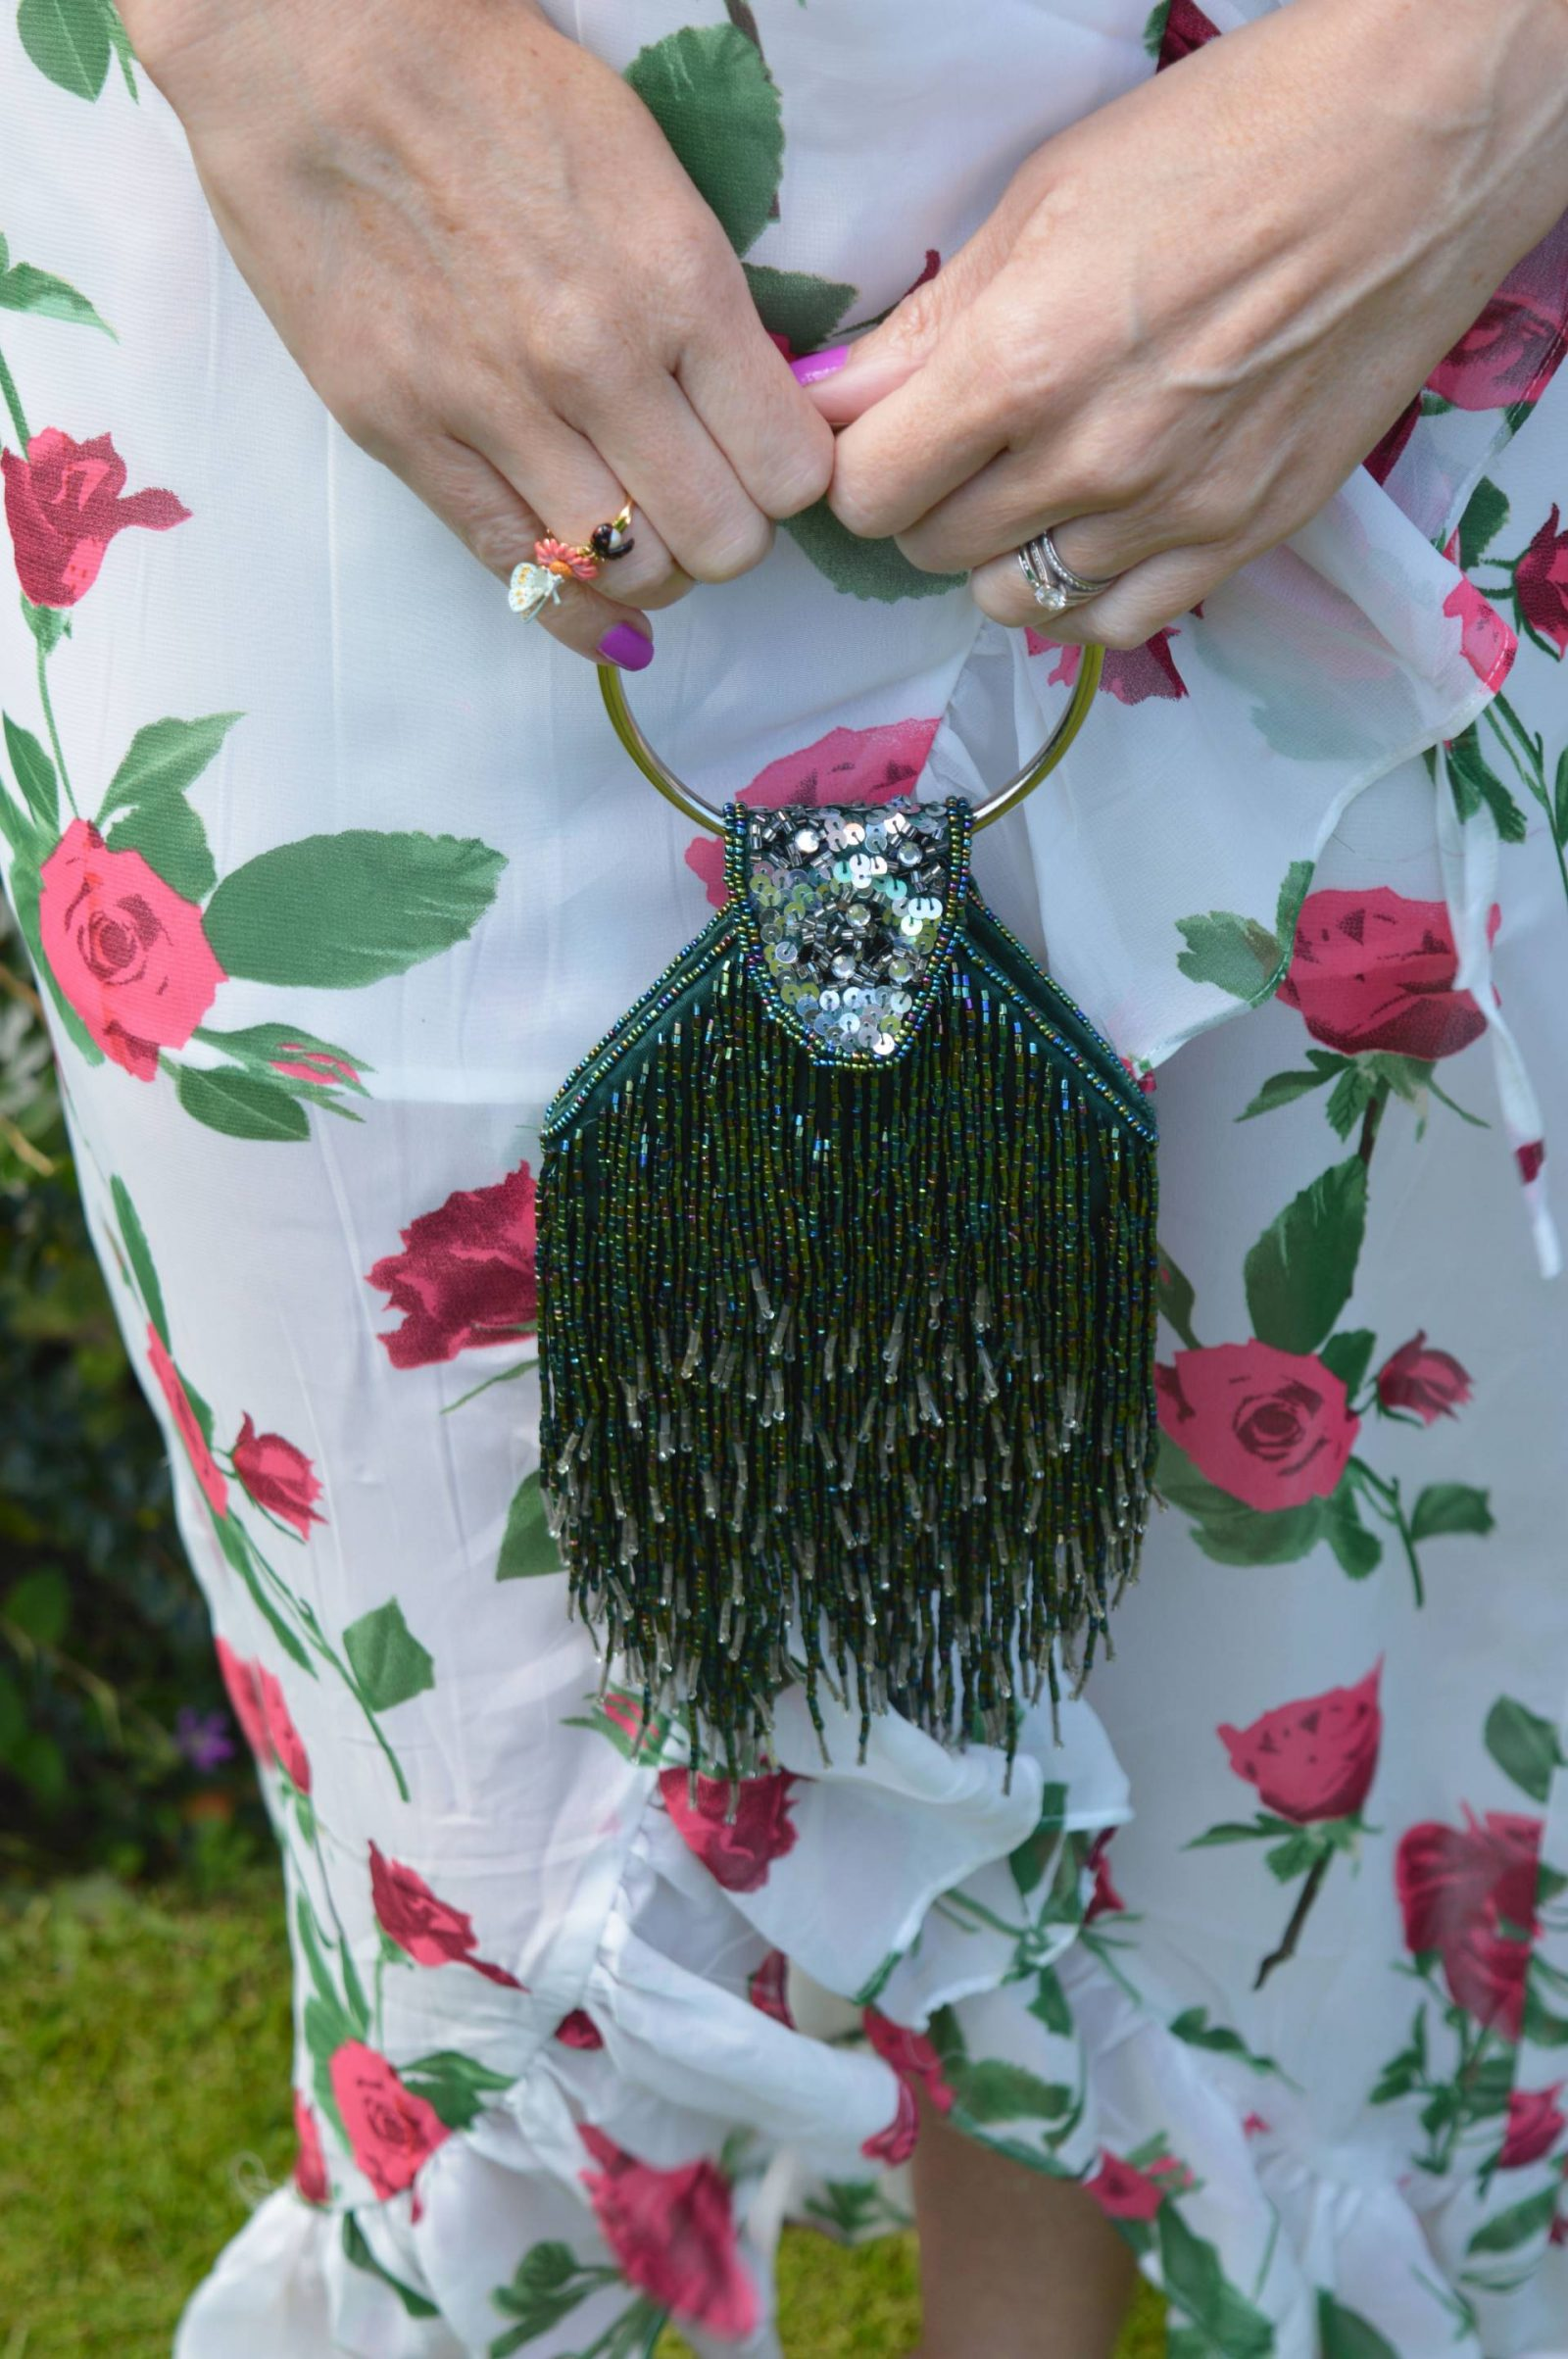 Wedding Guest Dresses From PrettyLittleThing green beaded ring handle bag Les Neriedes butterfly ring